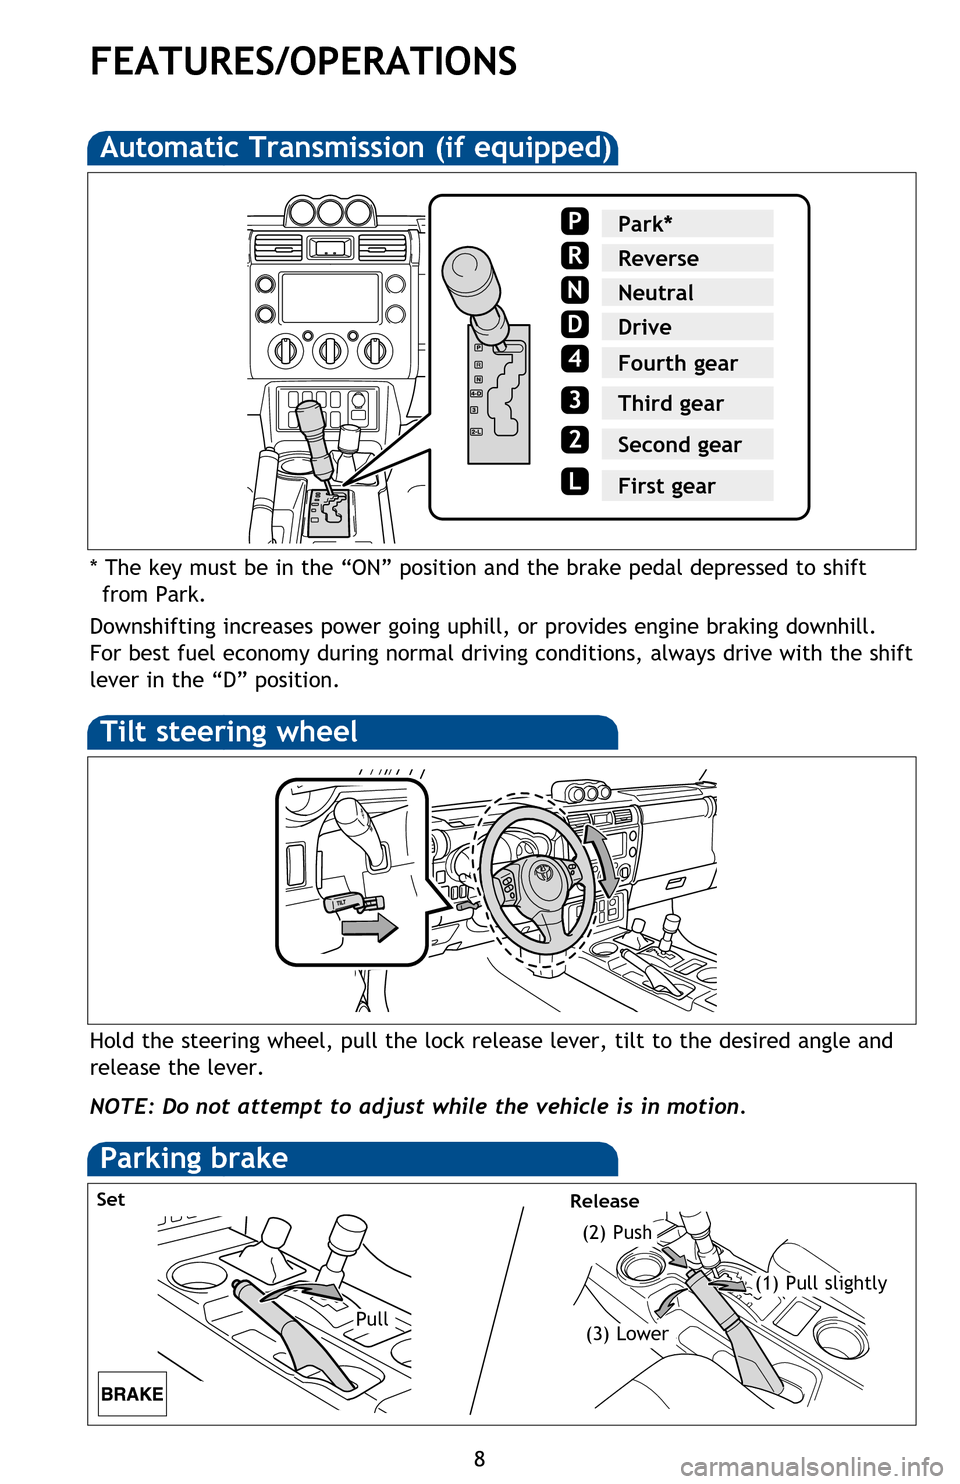 Toyota Fj Cruiser 2013 1g Quick Reference Guide For Brake Light Switch Wiring Diagram Page 10